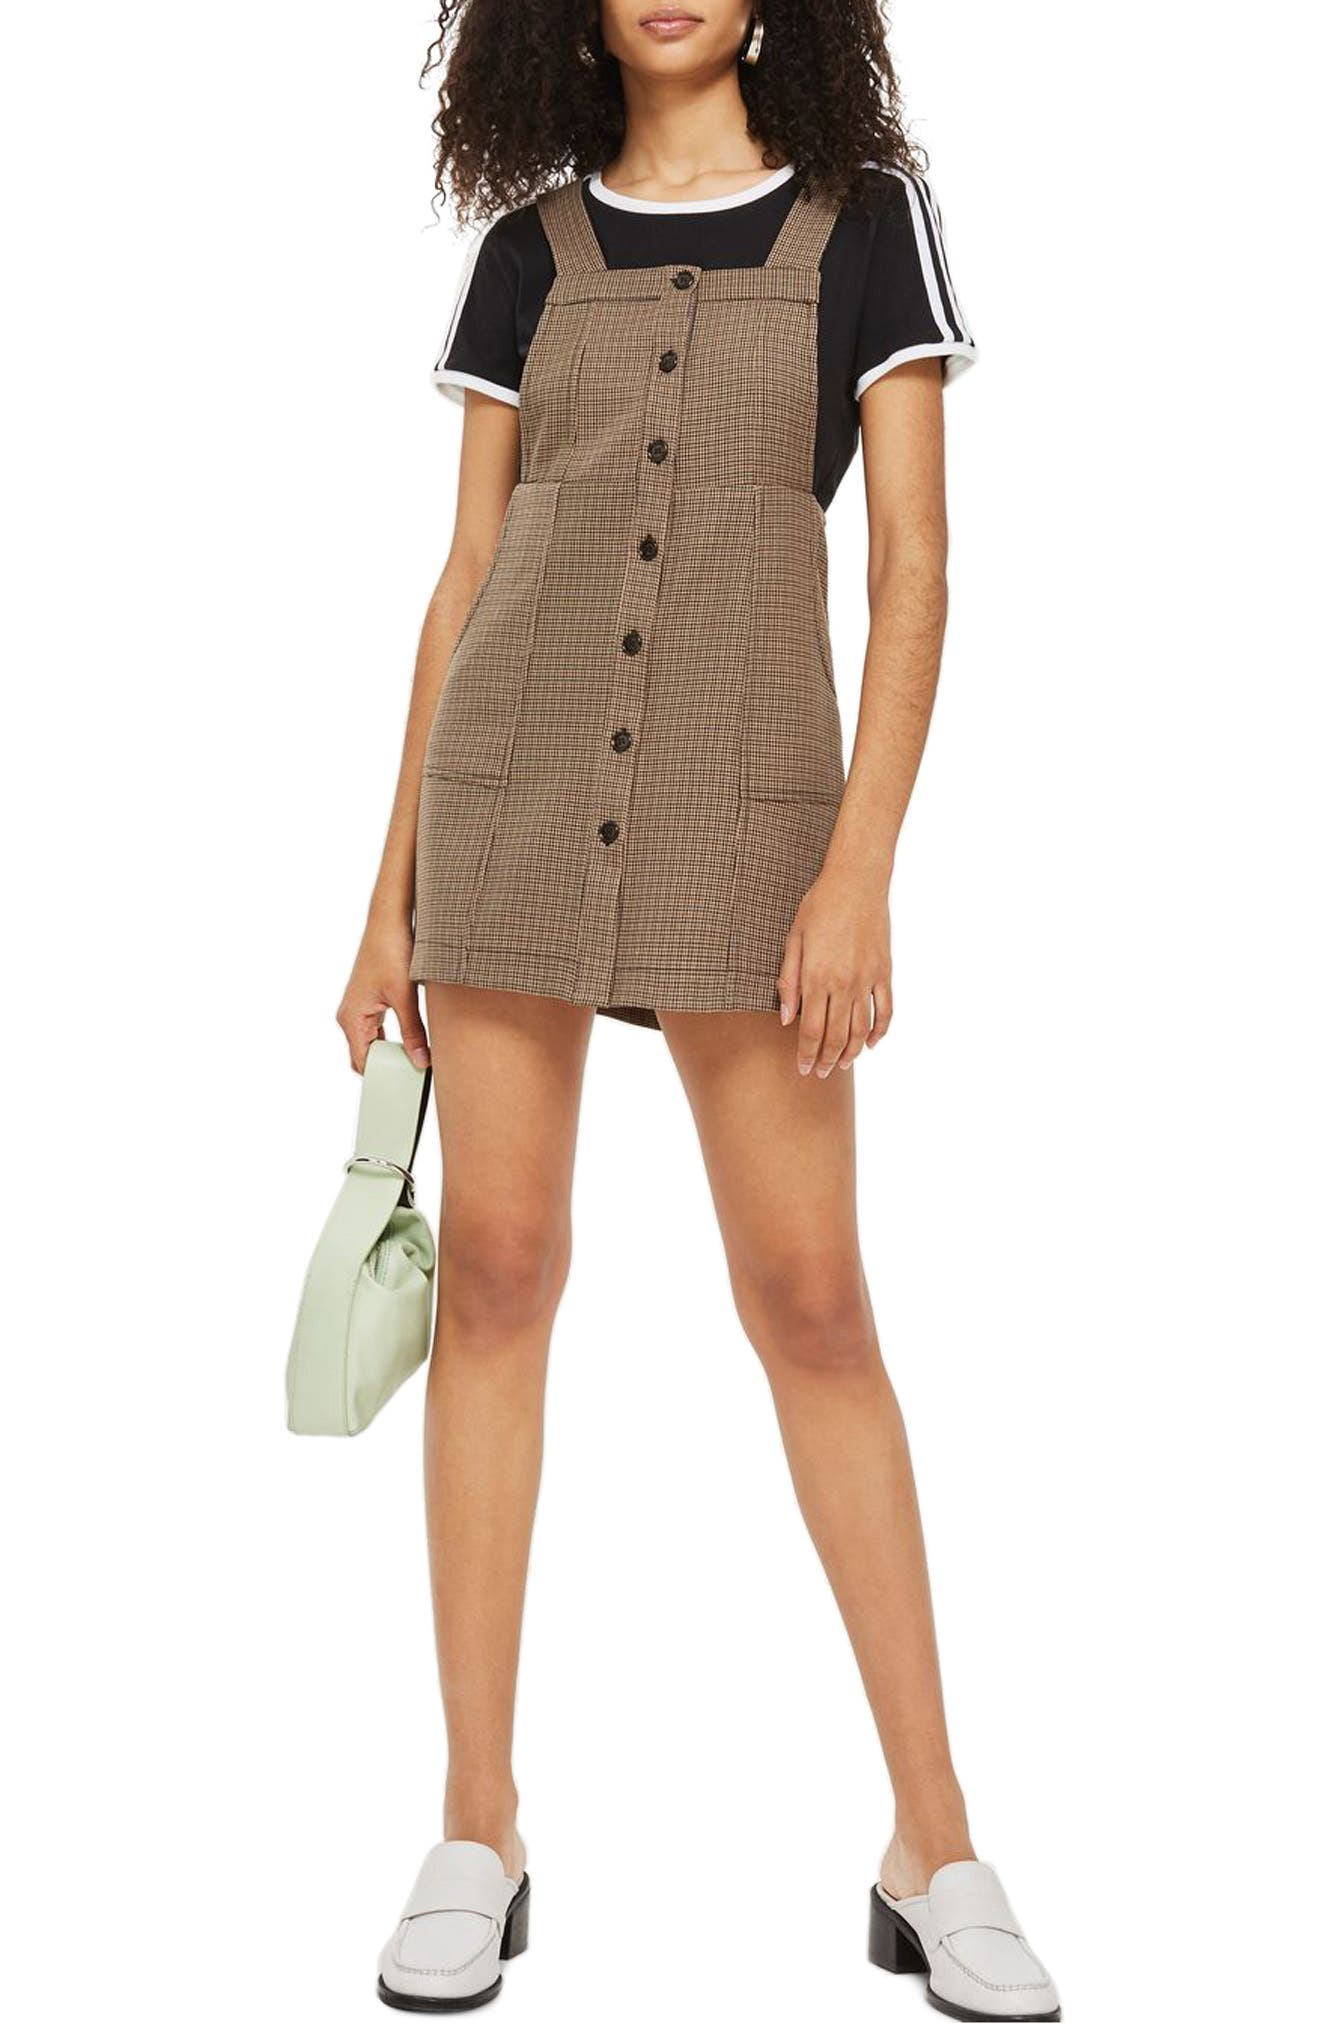 Topshop Heritage Check Pinafore Dress